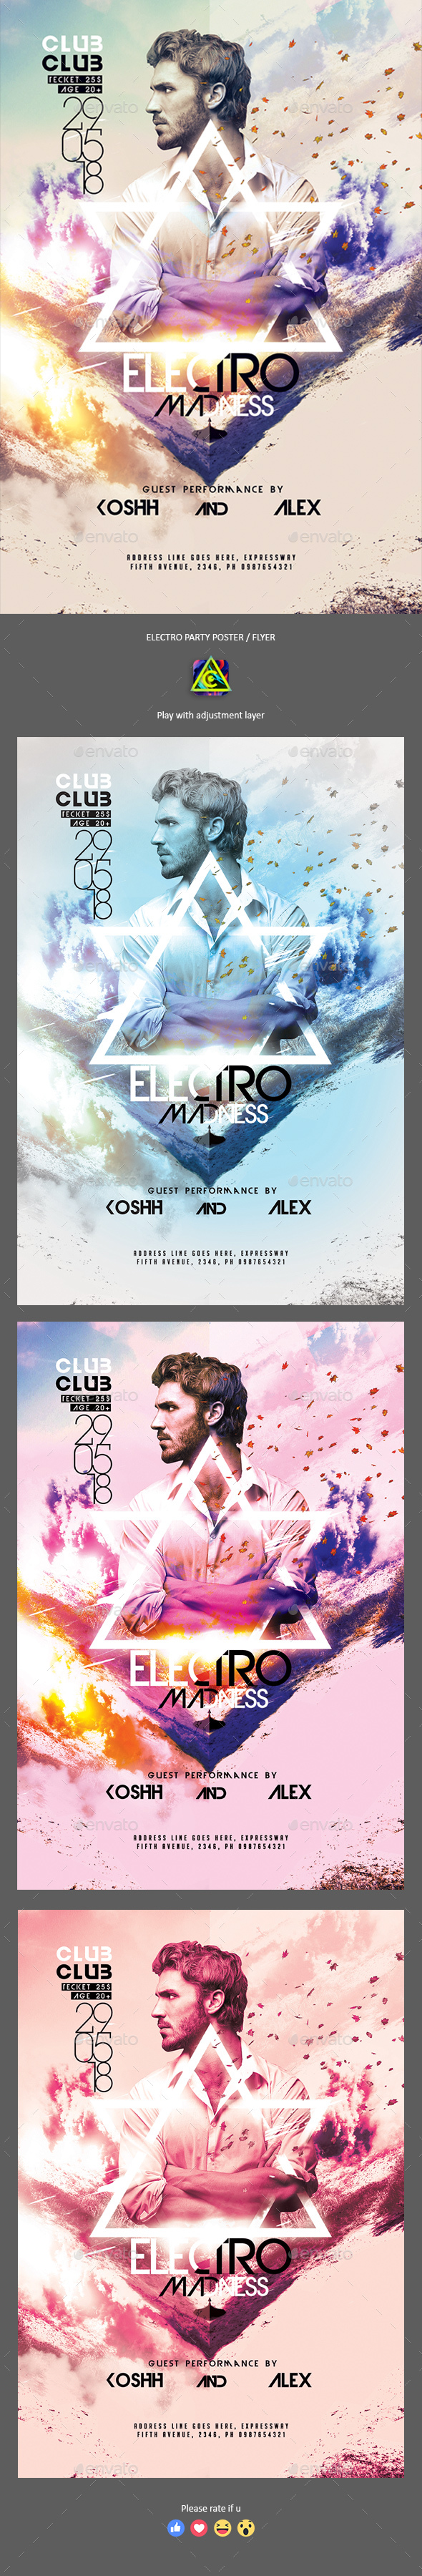 Electro Party Poster / Flyer - Clubs & Parties Events